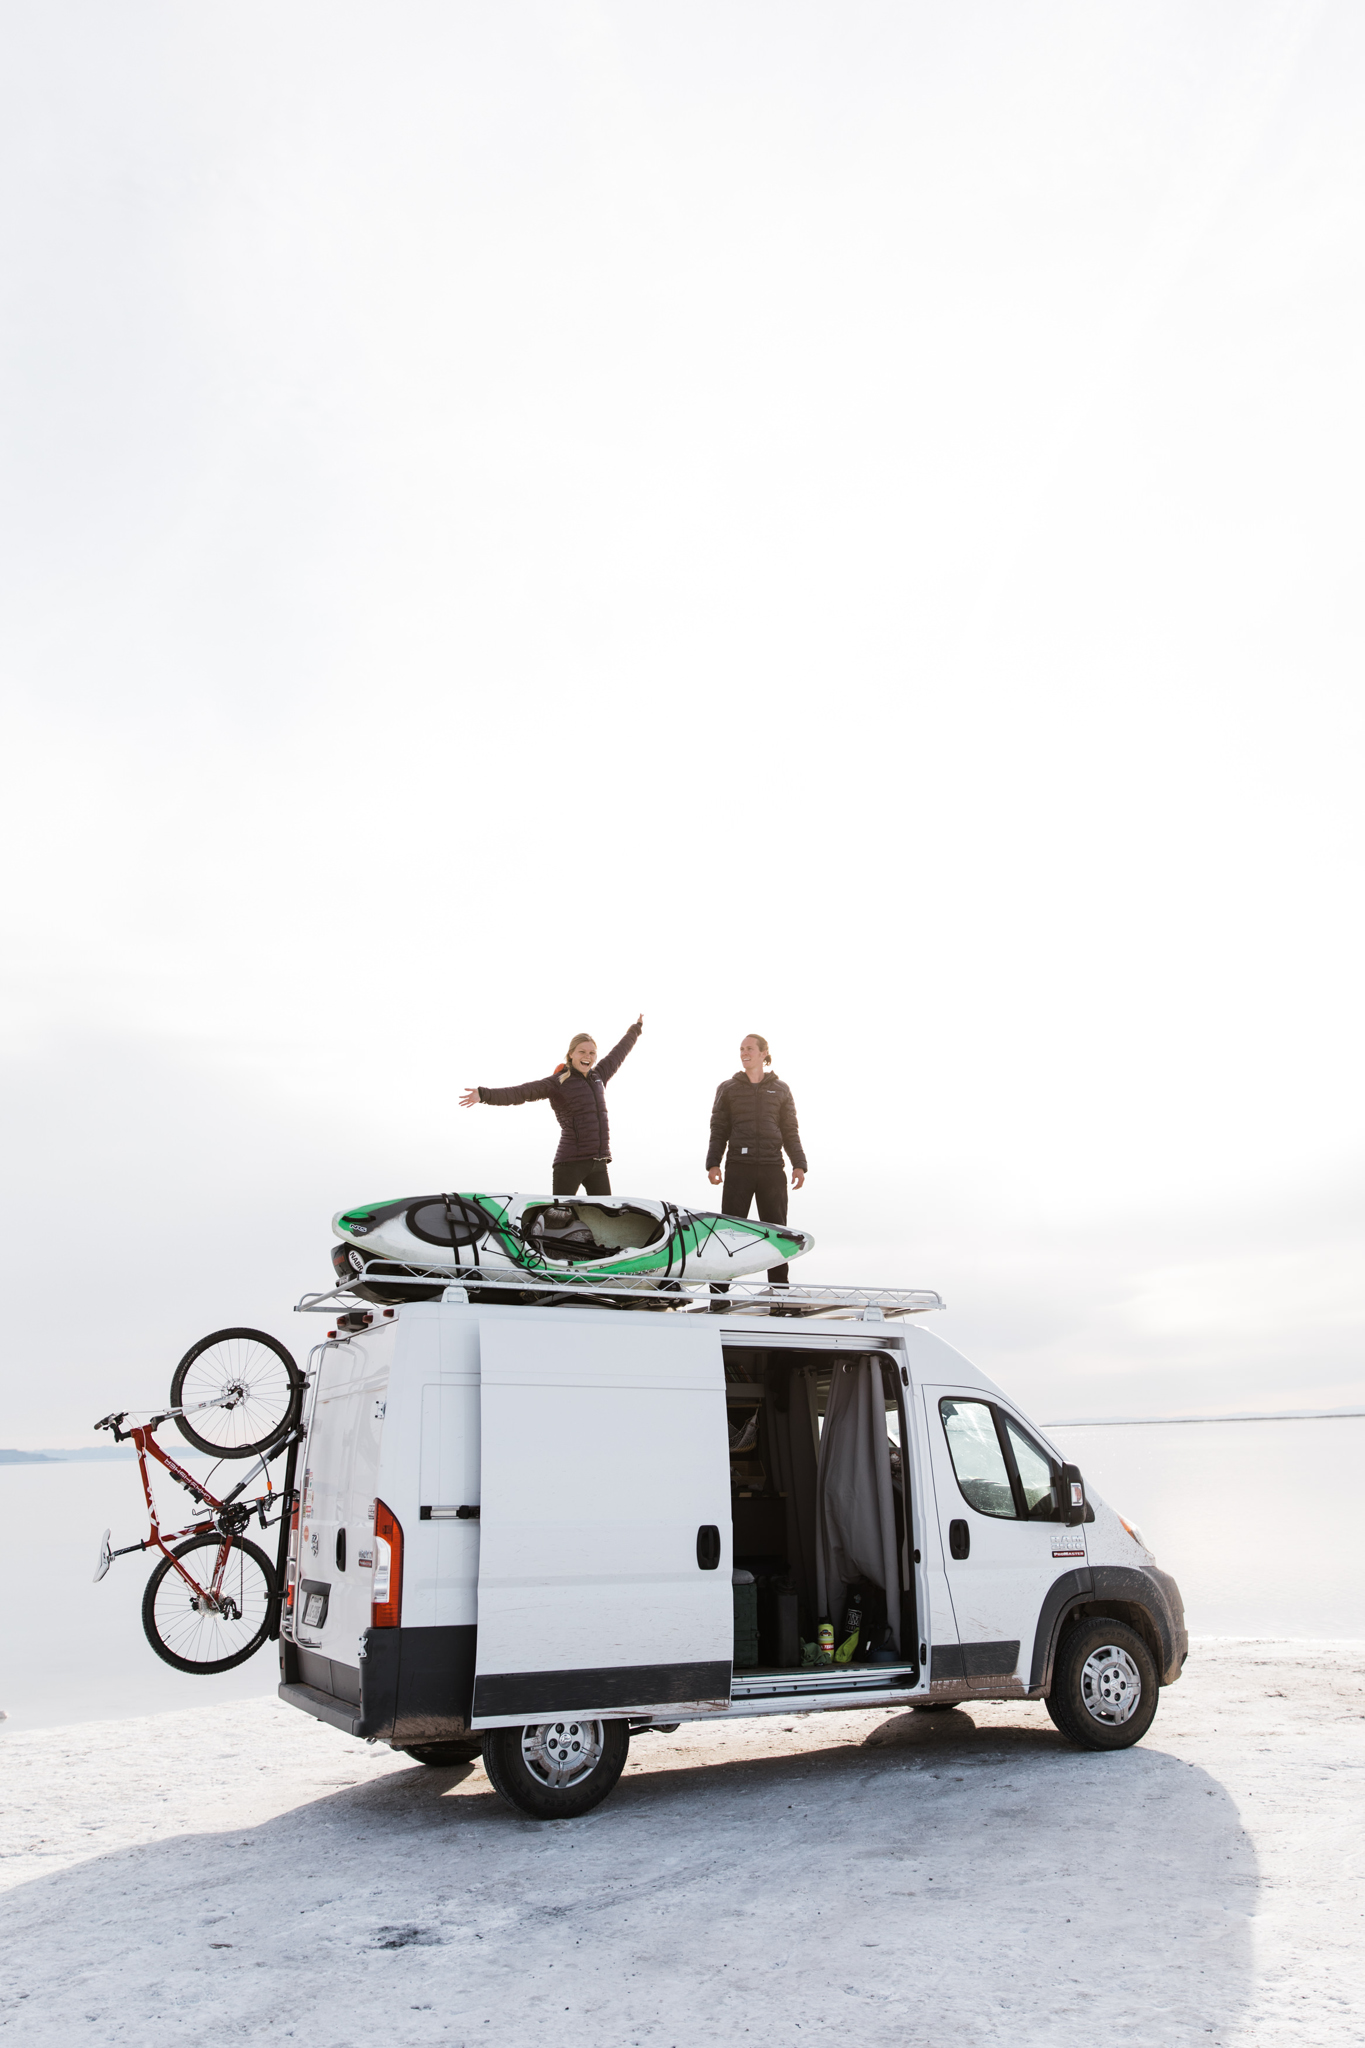 van life in utah | utah and california adventure elopement photographers | the hearnes adventure photography | www.thehearnes.com